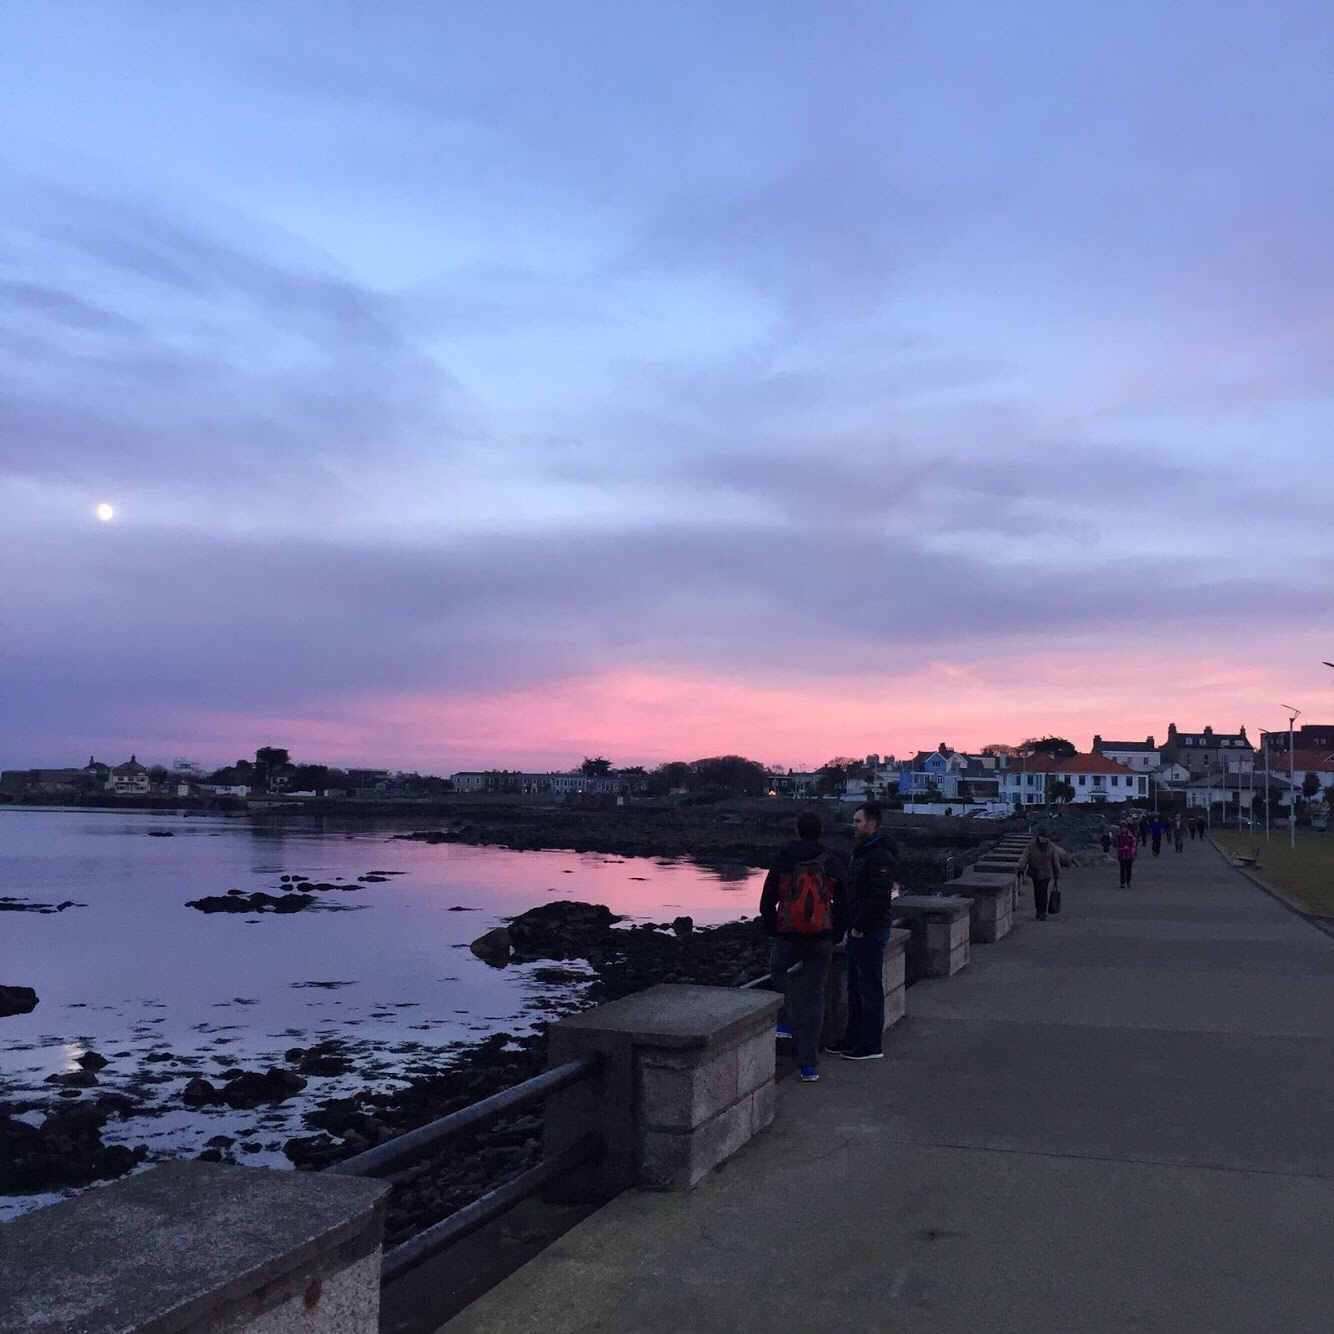 Cotton candy sunset along Dun Laoghaire promenade, county Dublin, Ireland